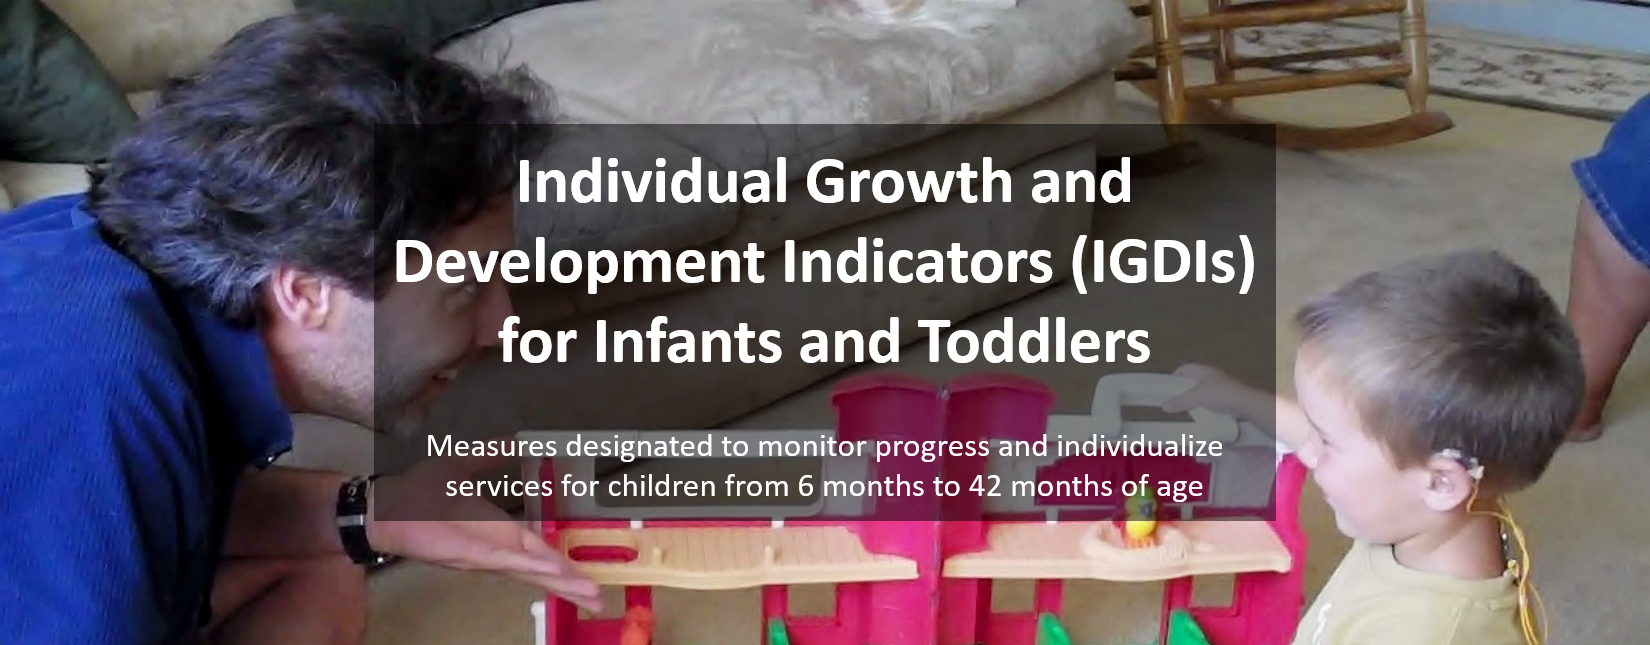 Individual Growth and Development Indicators (IGDIs) for Infants and Toddlers